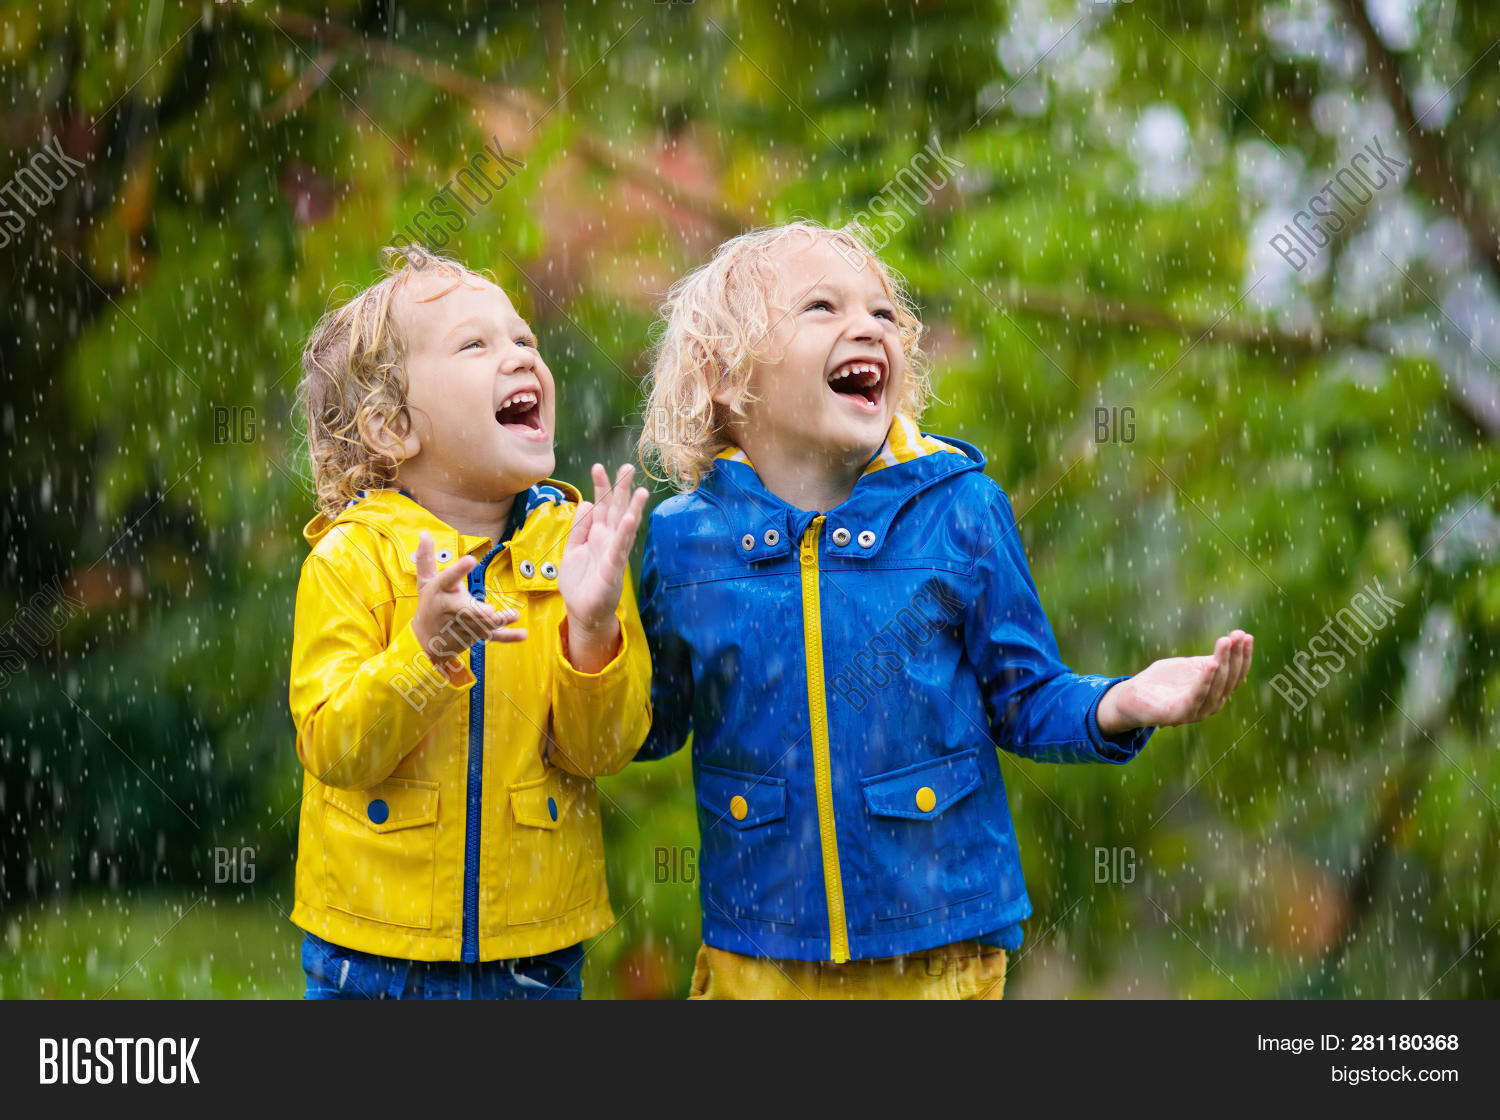 autumn,baby,blond,boots,boy,brother,child,childhood,children,coat,colorful,curly,fall,family,friends,fun,funny,garden,girl,happy,hood,kid,little,outdoor,outside,park,play,playing,puddle,rain,rainbow,raincoat,rainy,season,shower,sister,splash,spring,storm,summer,toddler,twins,umbrella,water,waterproof,weather,wet,yellow